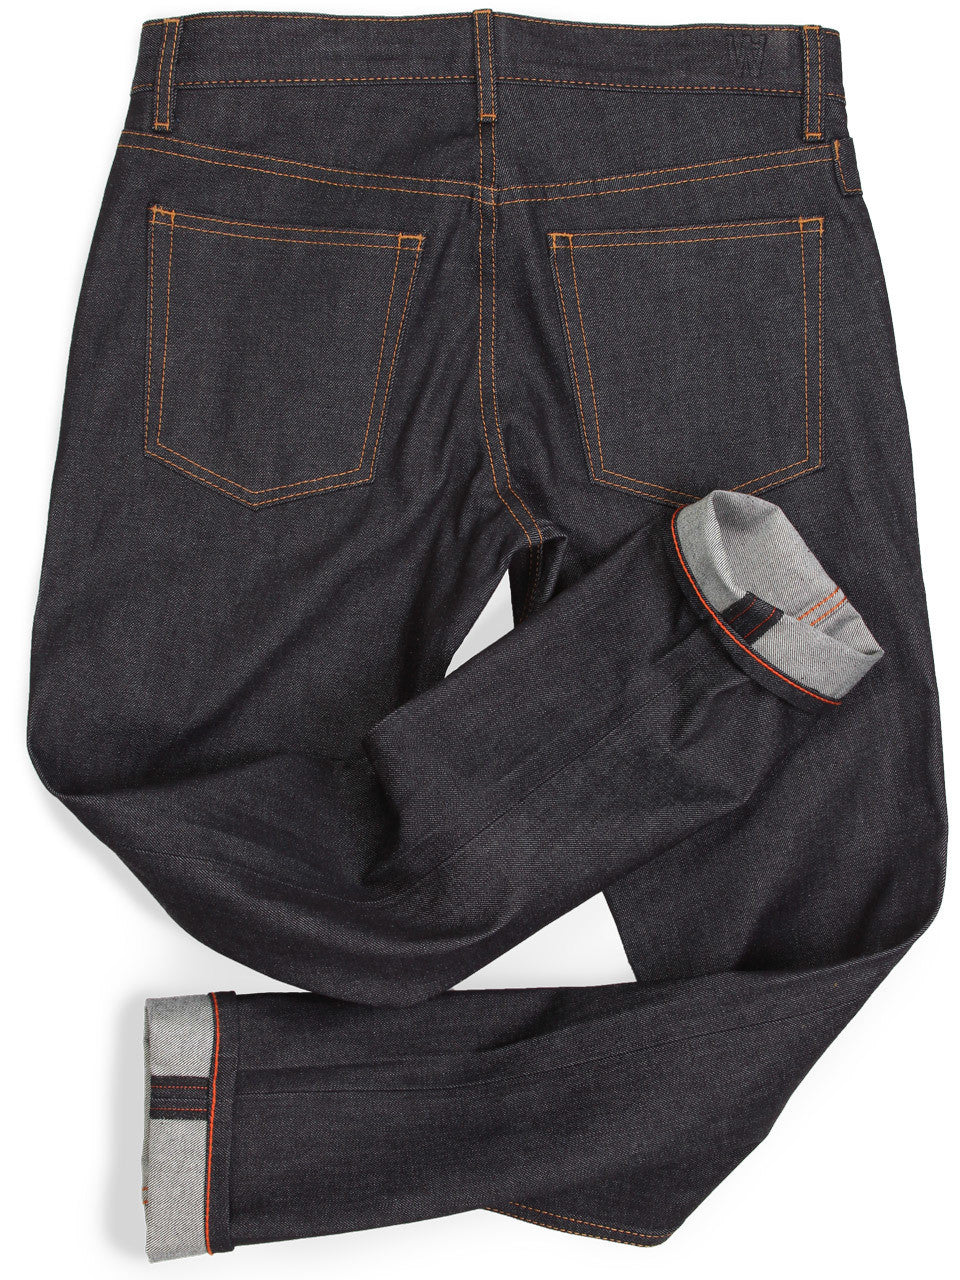 Willimamsburg Garment Co.-Hope St. Denim Jeans